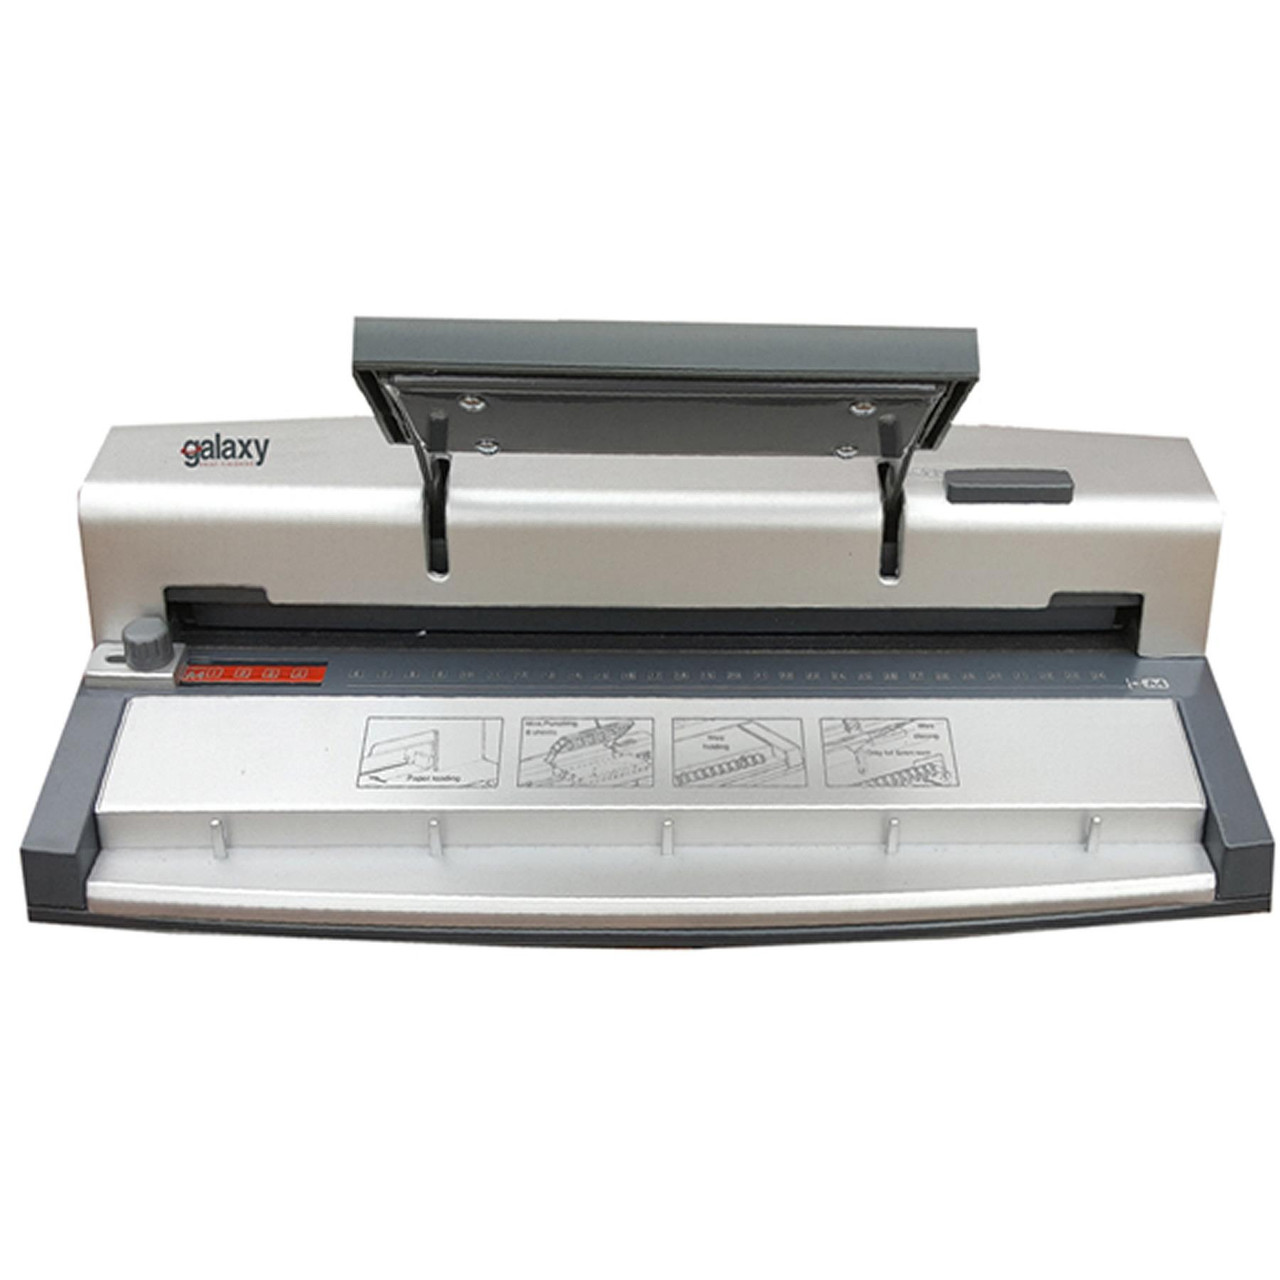 Galaxy G60 A4 Wire Binding Machine with 100 Wire Bindings